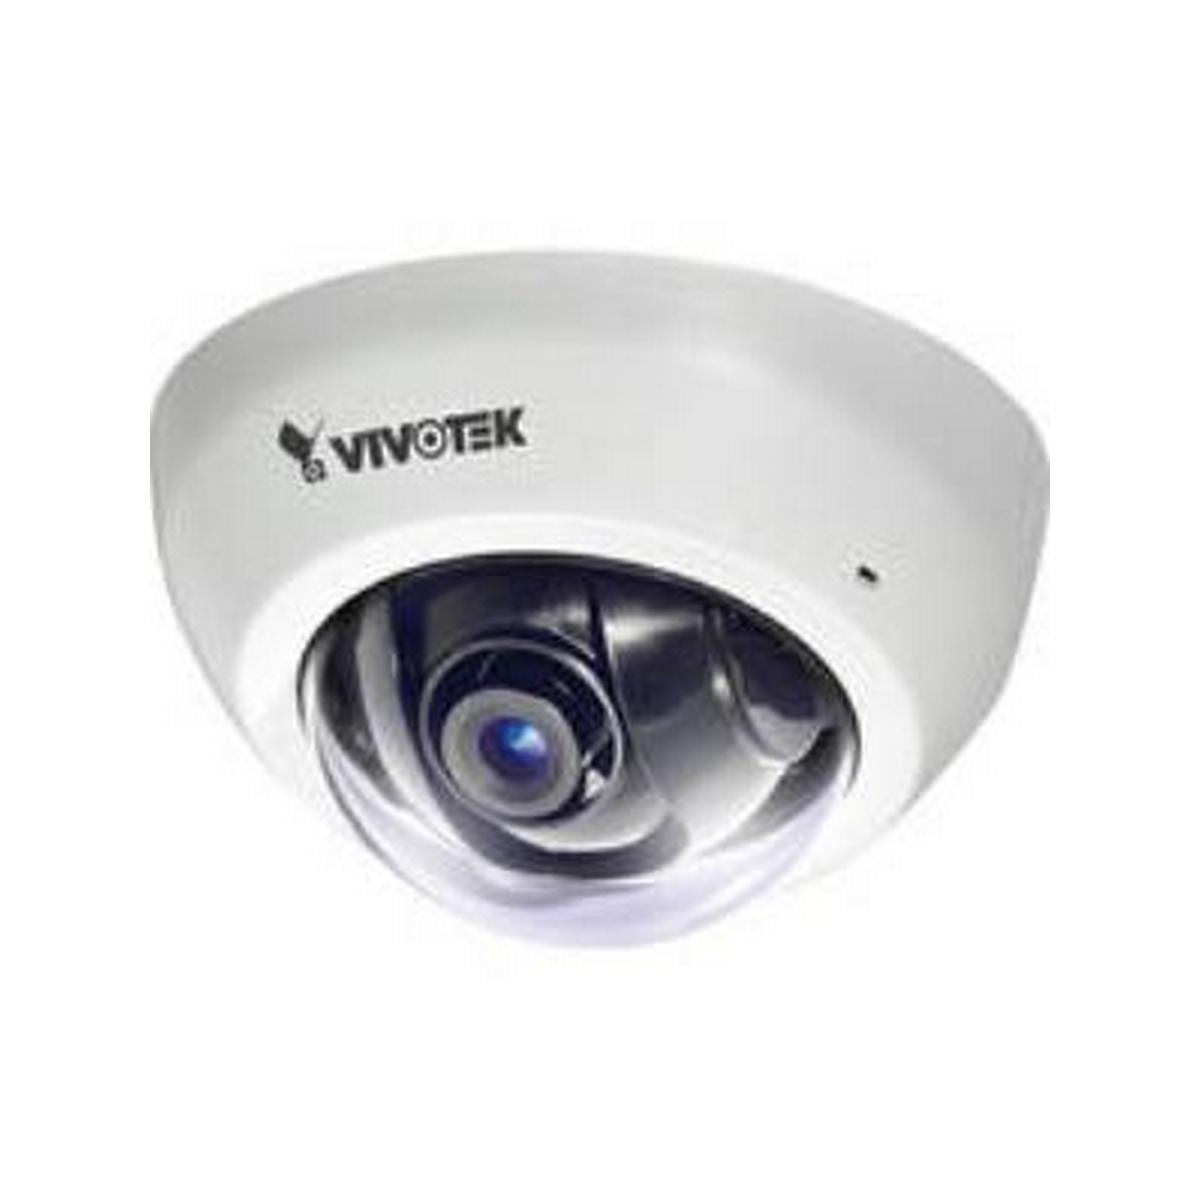 Vivotek FD8136-F6-W 1MP Ultra-mini Dome Network Camera 6 mm lens New!